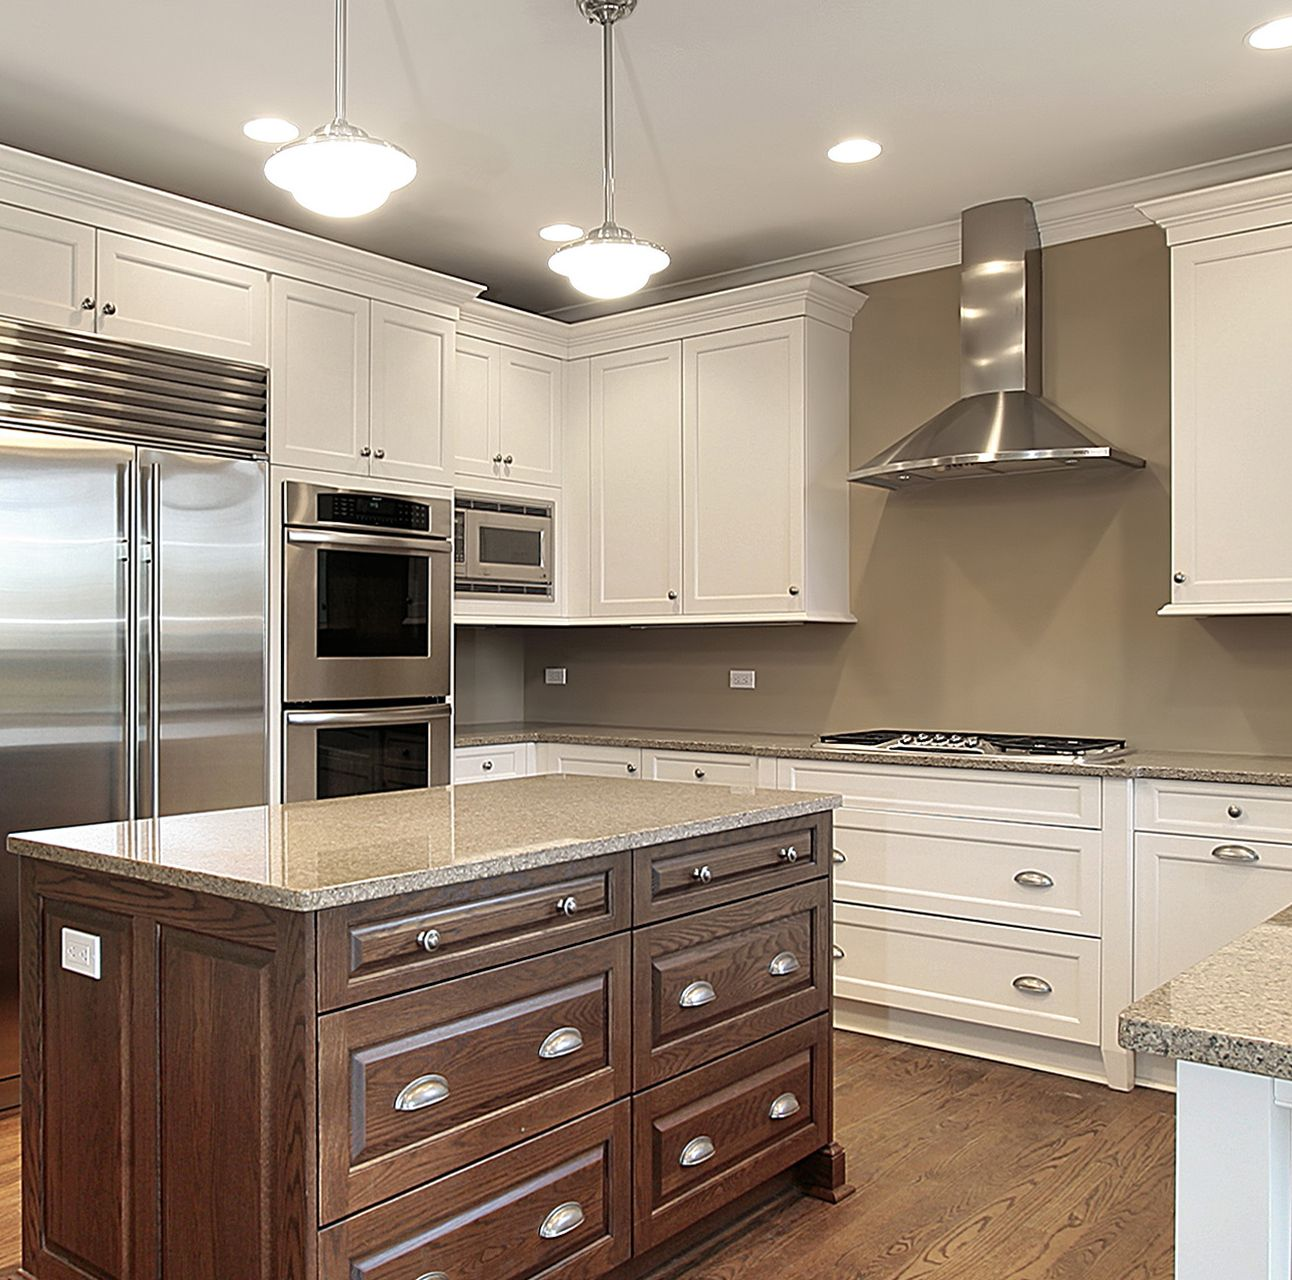 White Kitchen Ideas Kitchen Design Color Kitchen Design Dark Kitchen Cabinets